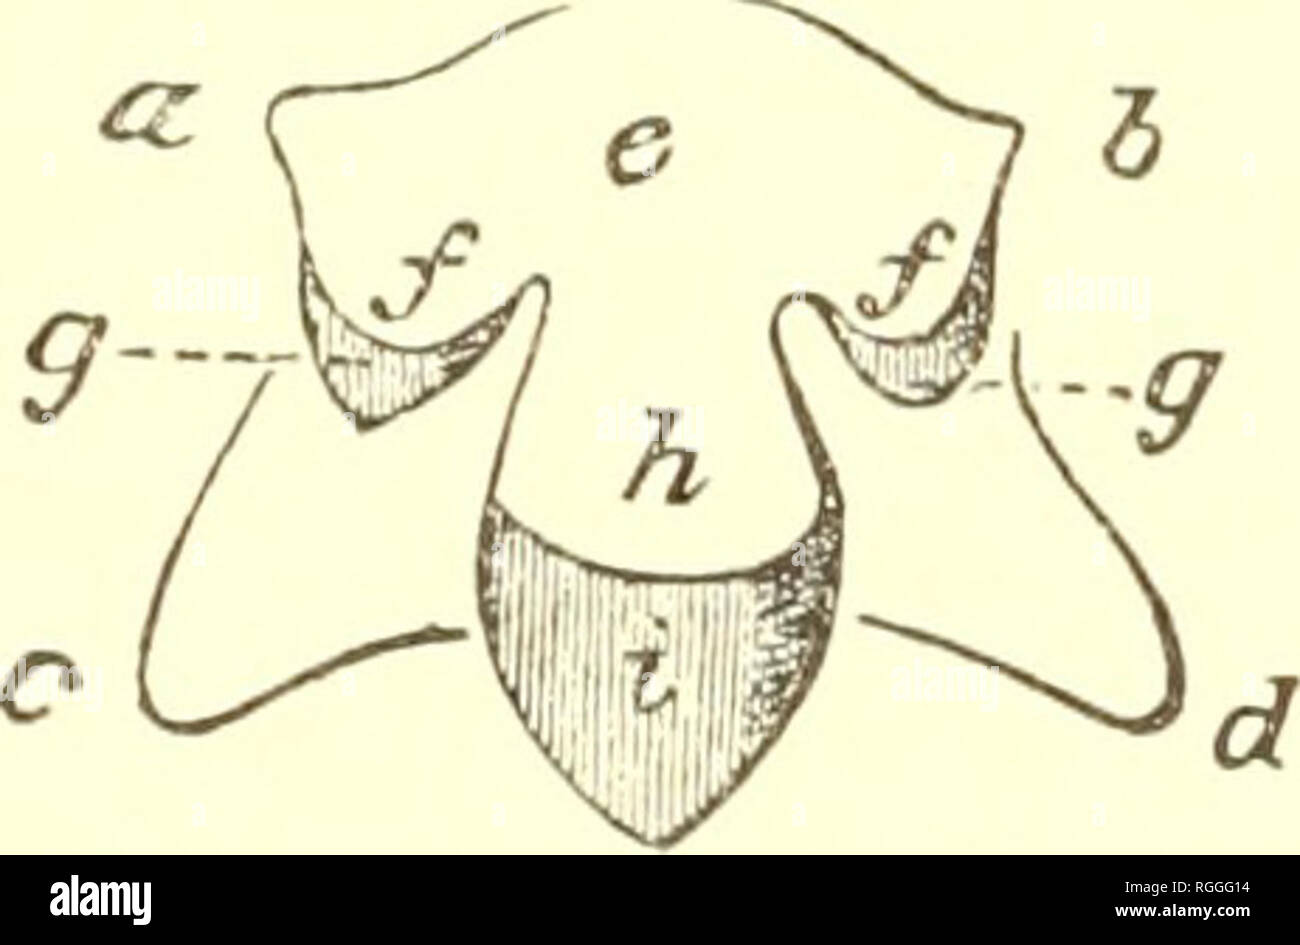 hight resolution of zoology 46 terrestrial air breathing mollusks one half of two transverse rows of teeth of sten hirsutum row or indeed